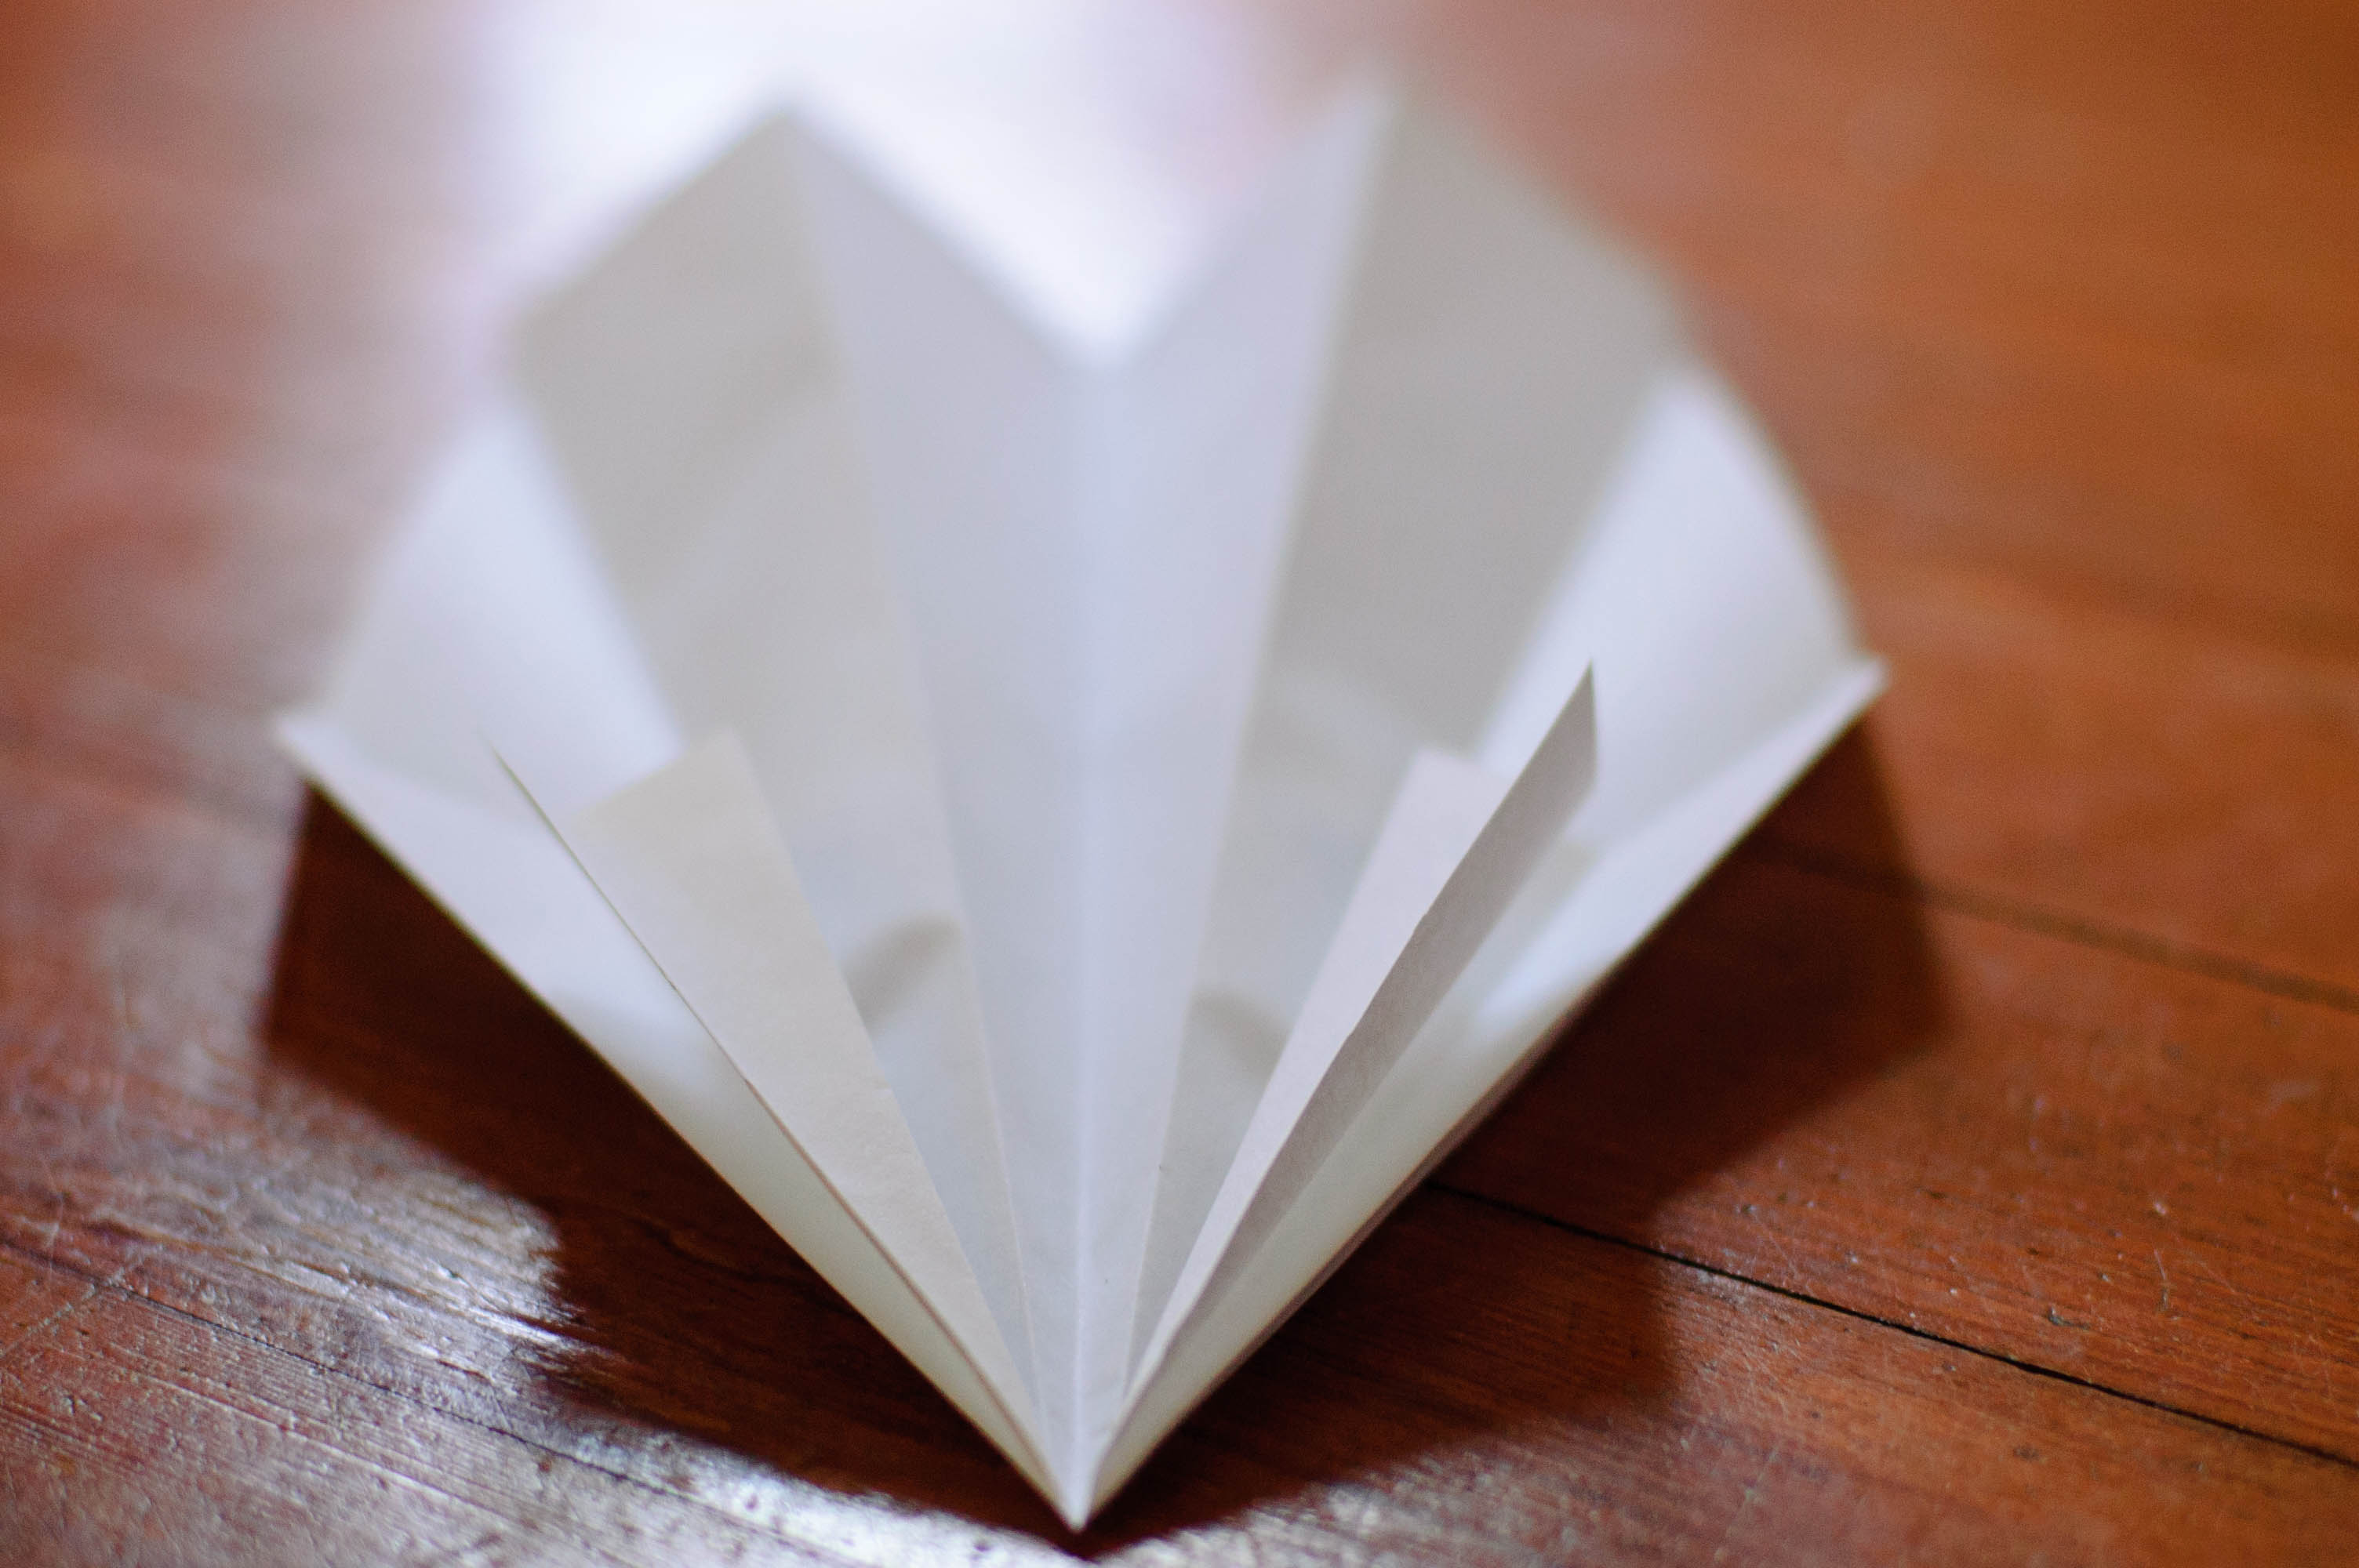 Exactly who made the first paper airplanes is unclear, though artist and inventor Leonardo Da Vinci gets credit for designing flying machines out of parchment in the 15th century. (Photo: Andy Mudrak/Flickr, CC BY 2.0)